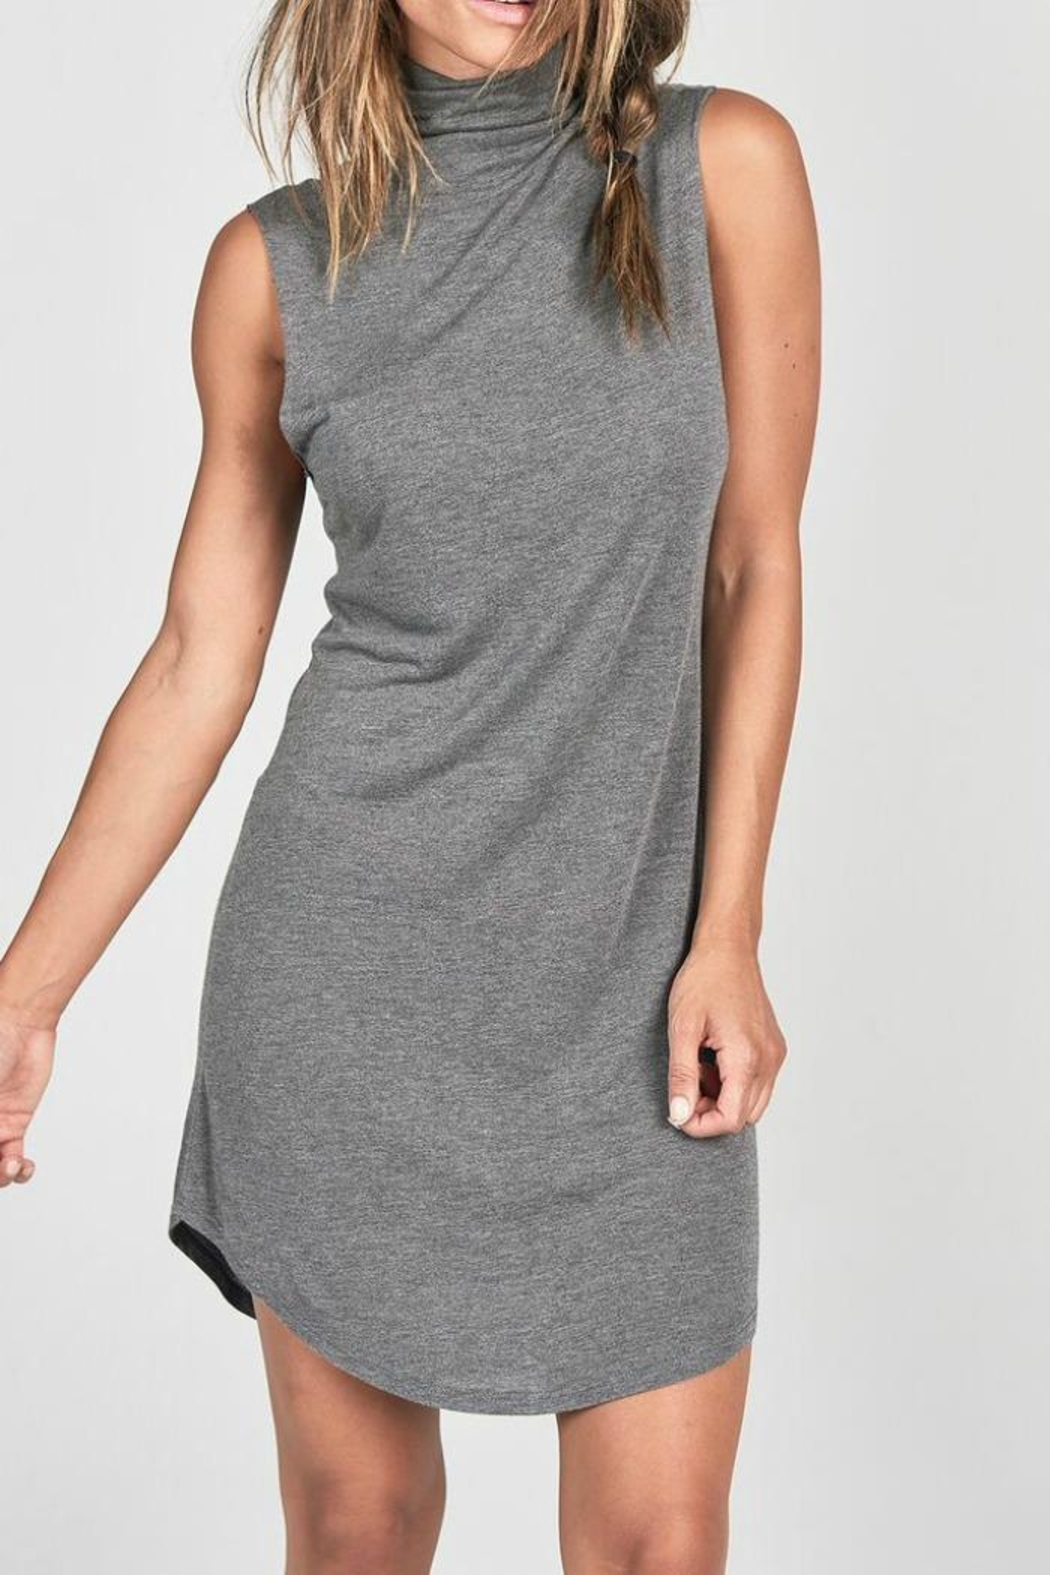 Joah Brown Lenox Tank Dress - Front Cropped Image